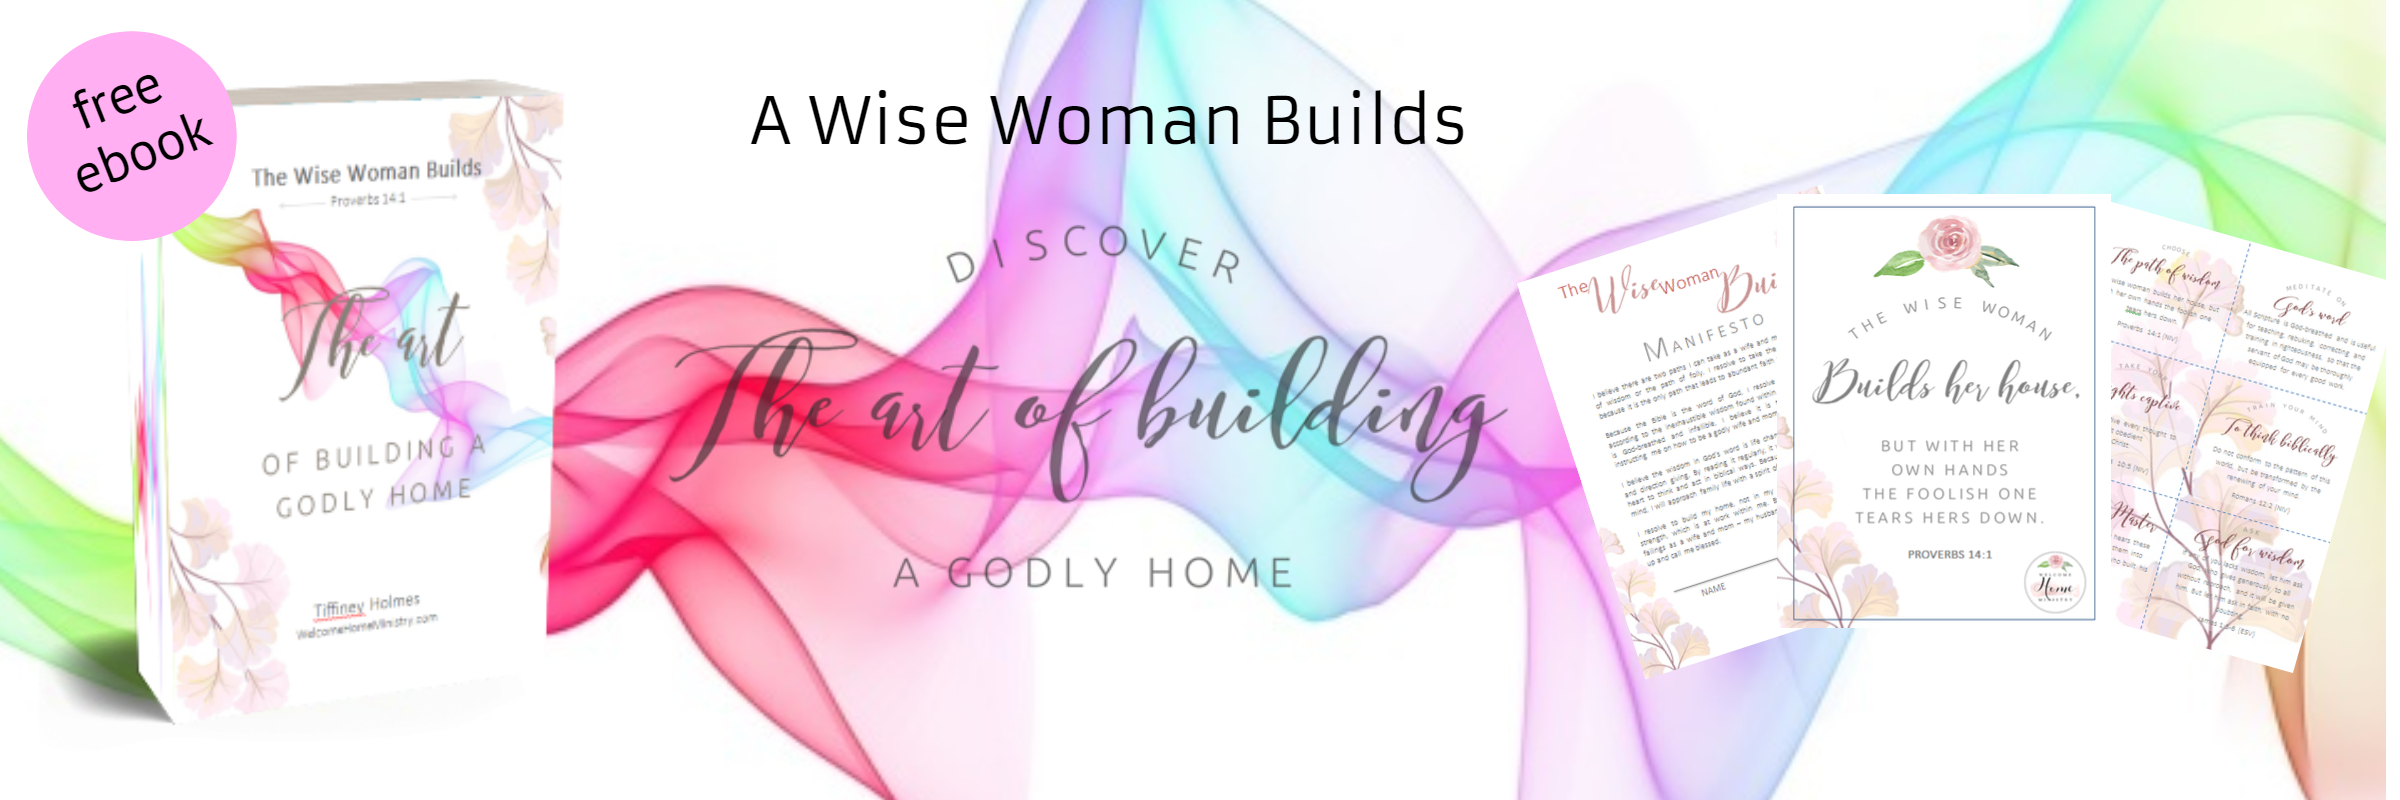 Free Ebook! The Wise Woman Builds: The Art of Home Building